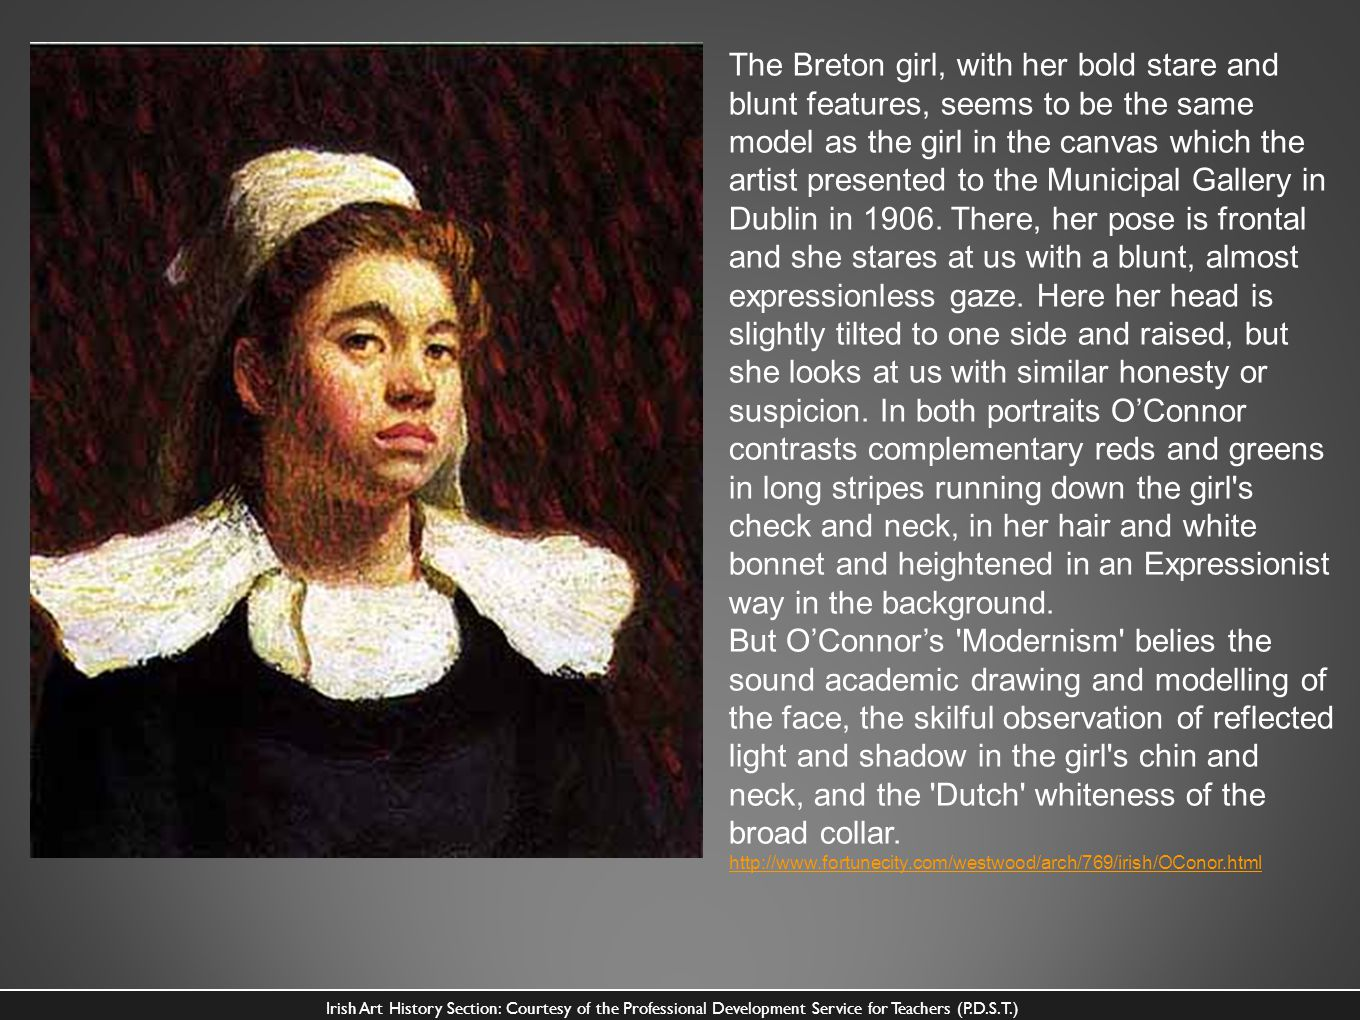 The Breton girl, with her bold stare and blunt features, seems to be the same model as the girl in the canvas which the artist presented to the Municipal Gallery in Dublin in 1906. There, her pose is frontal and she stares at us with a blunt, almost expressionless gaze. Here her head is slightly tilted to one side and raised, but she looks at us with similar honesty or suspicion. In both portraits O'Connor contrasts complementary reds and greens in long stripes running down the girl s check and neck, in her hair and white bonnet and heightened in an Expressionist way in the background.